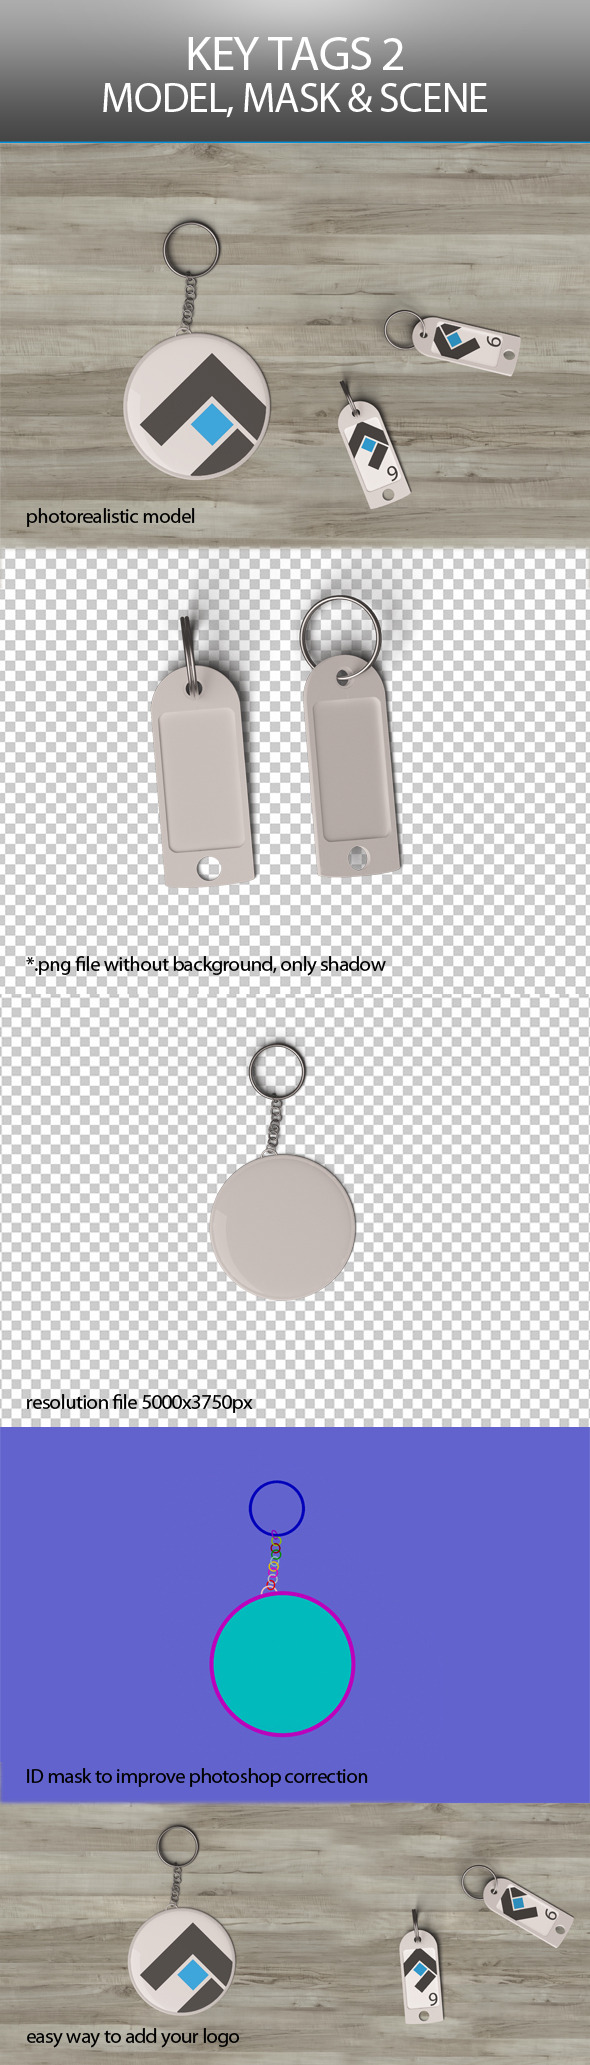 Key Tags 2 - 3DOcean Item for Sale